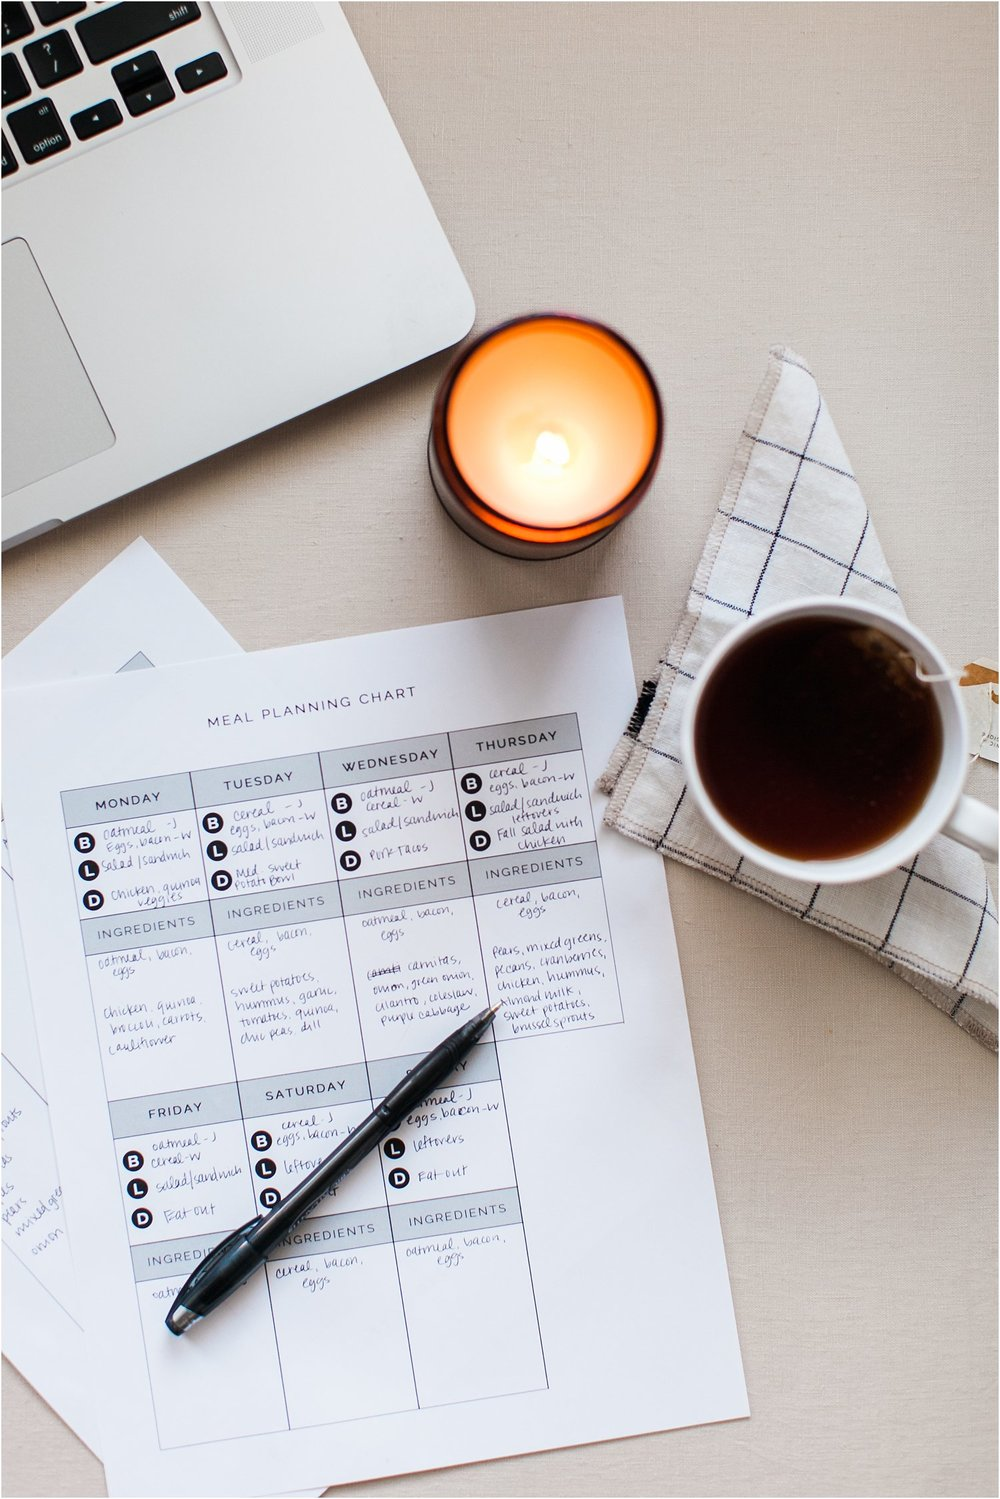 Meal Planning - Why It's Awesome & How to Do It + A Free Printable! | Feast & Dwell